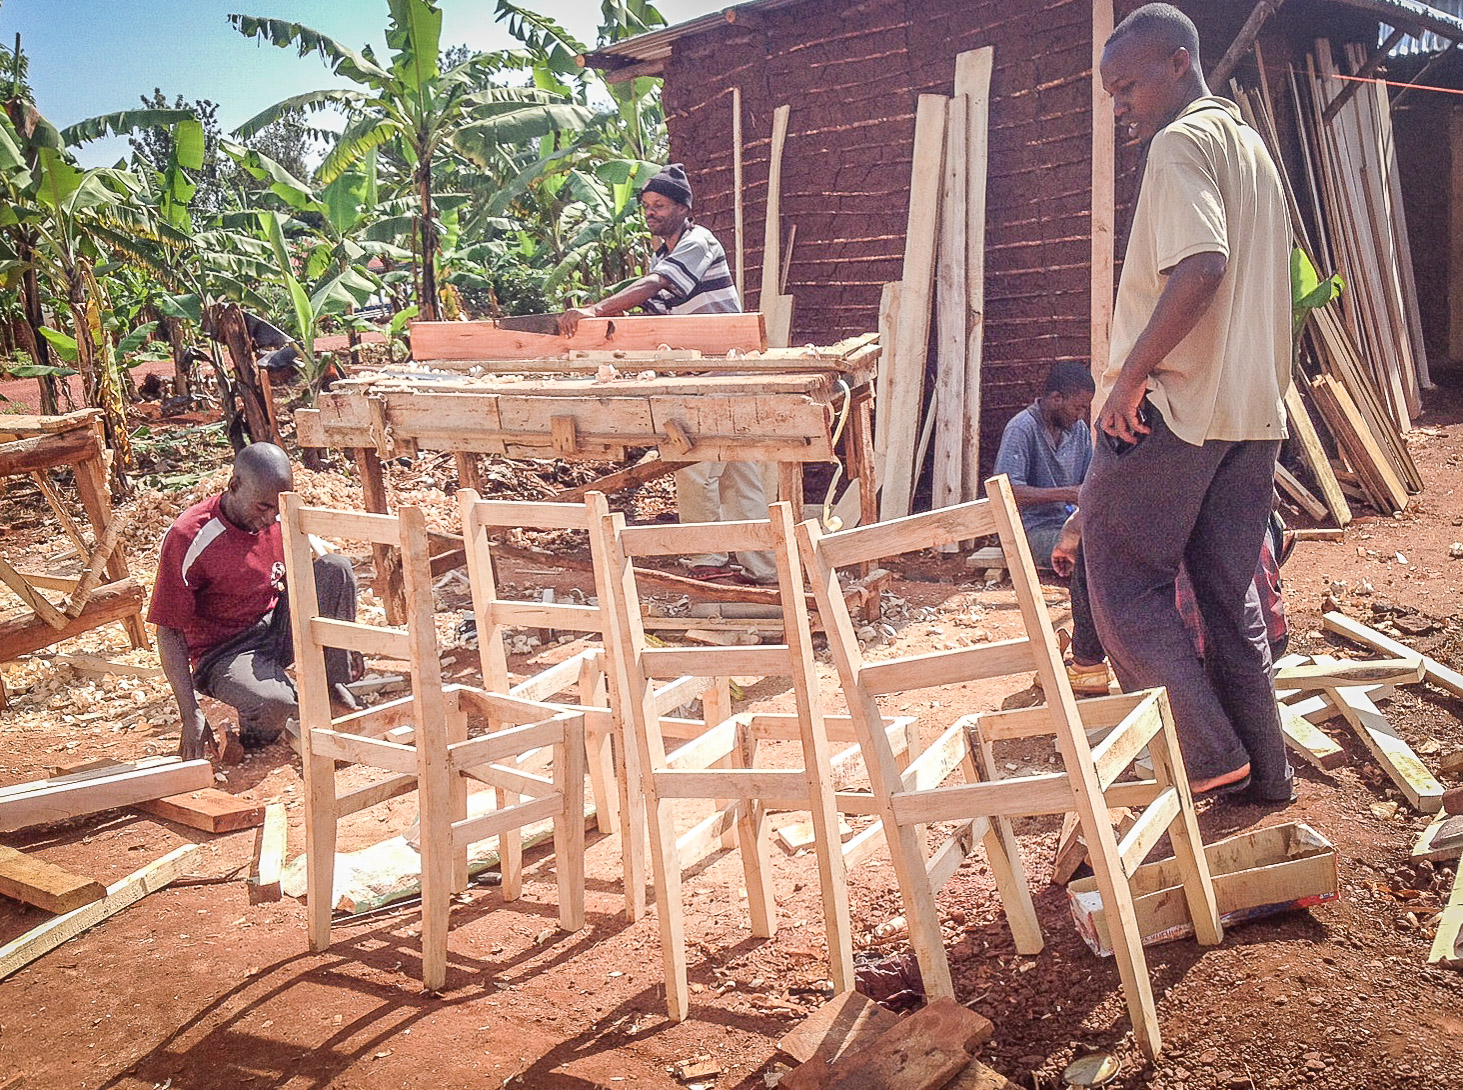 Constructing some of the chairs for the Multipurpose building